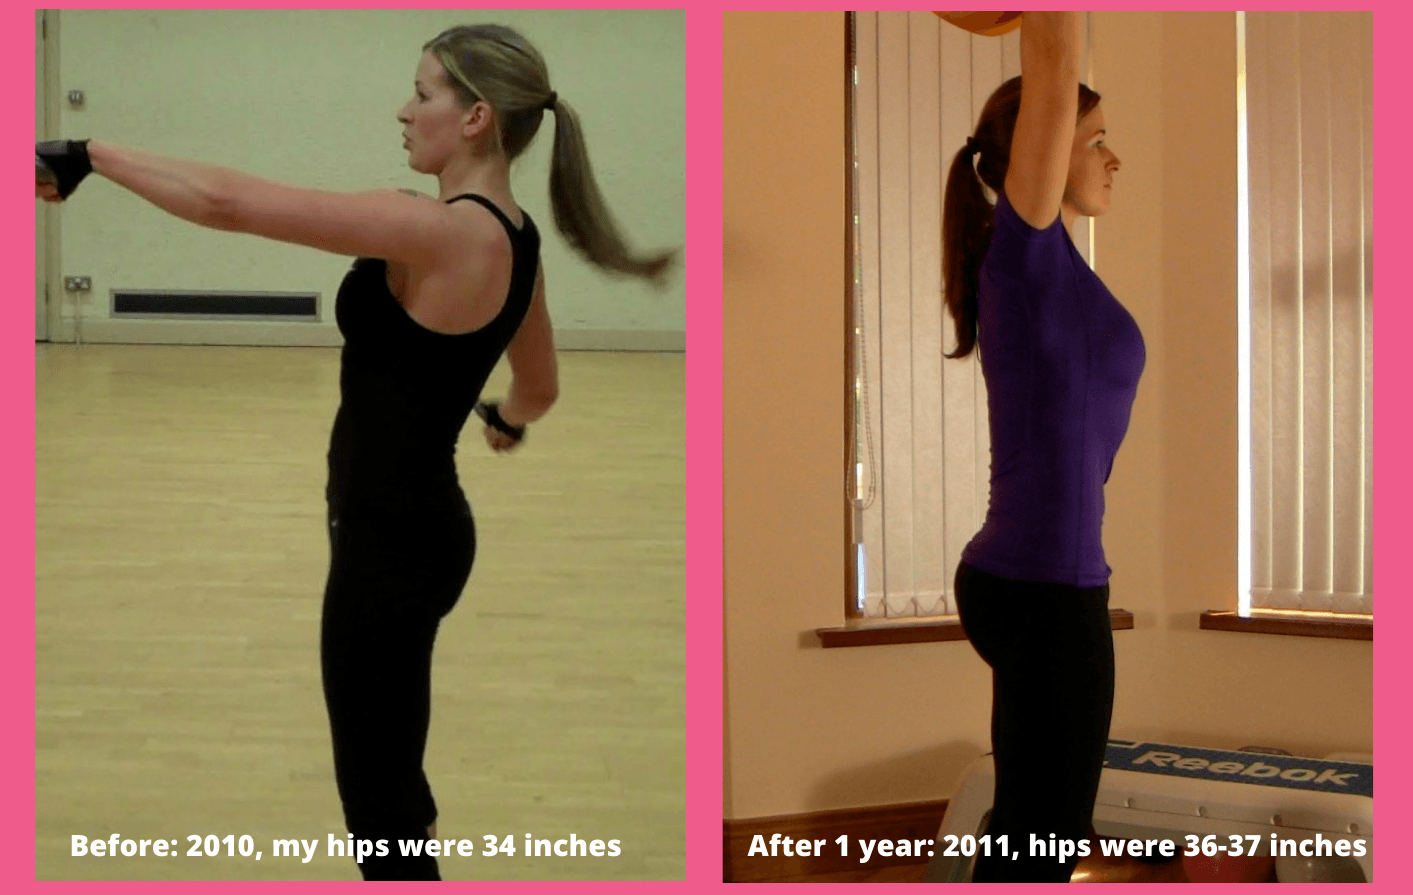 Two photos side by side showing a woman's body in a profile view to illustration glute growth after hip thrusts. Before, hips were 34 inches. After 1 year, hips were 36-37 inches and posture is much stronger